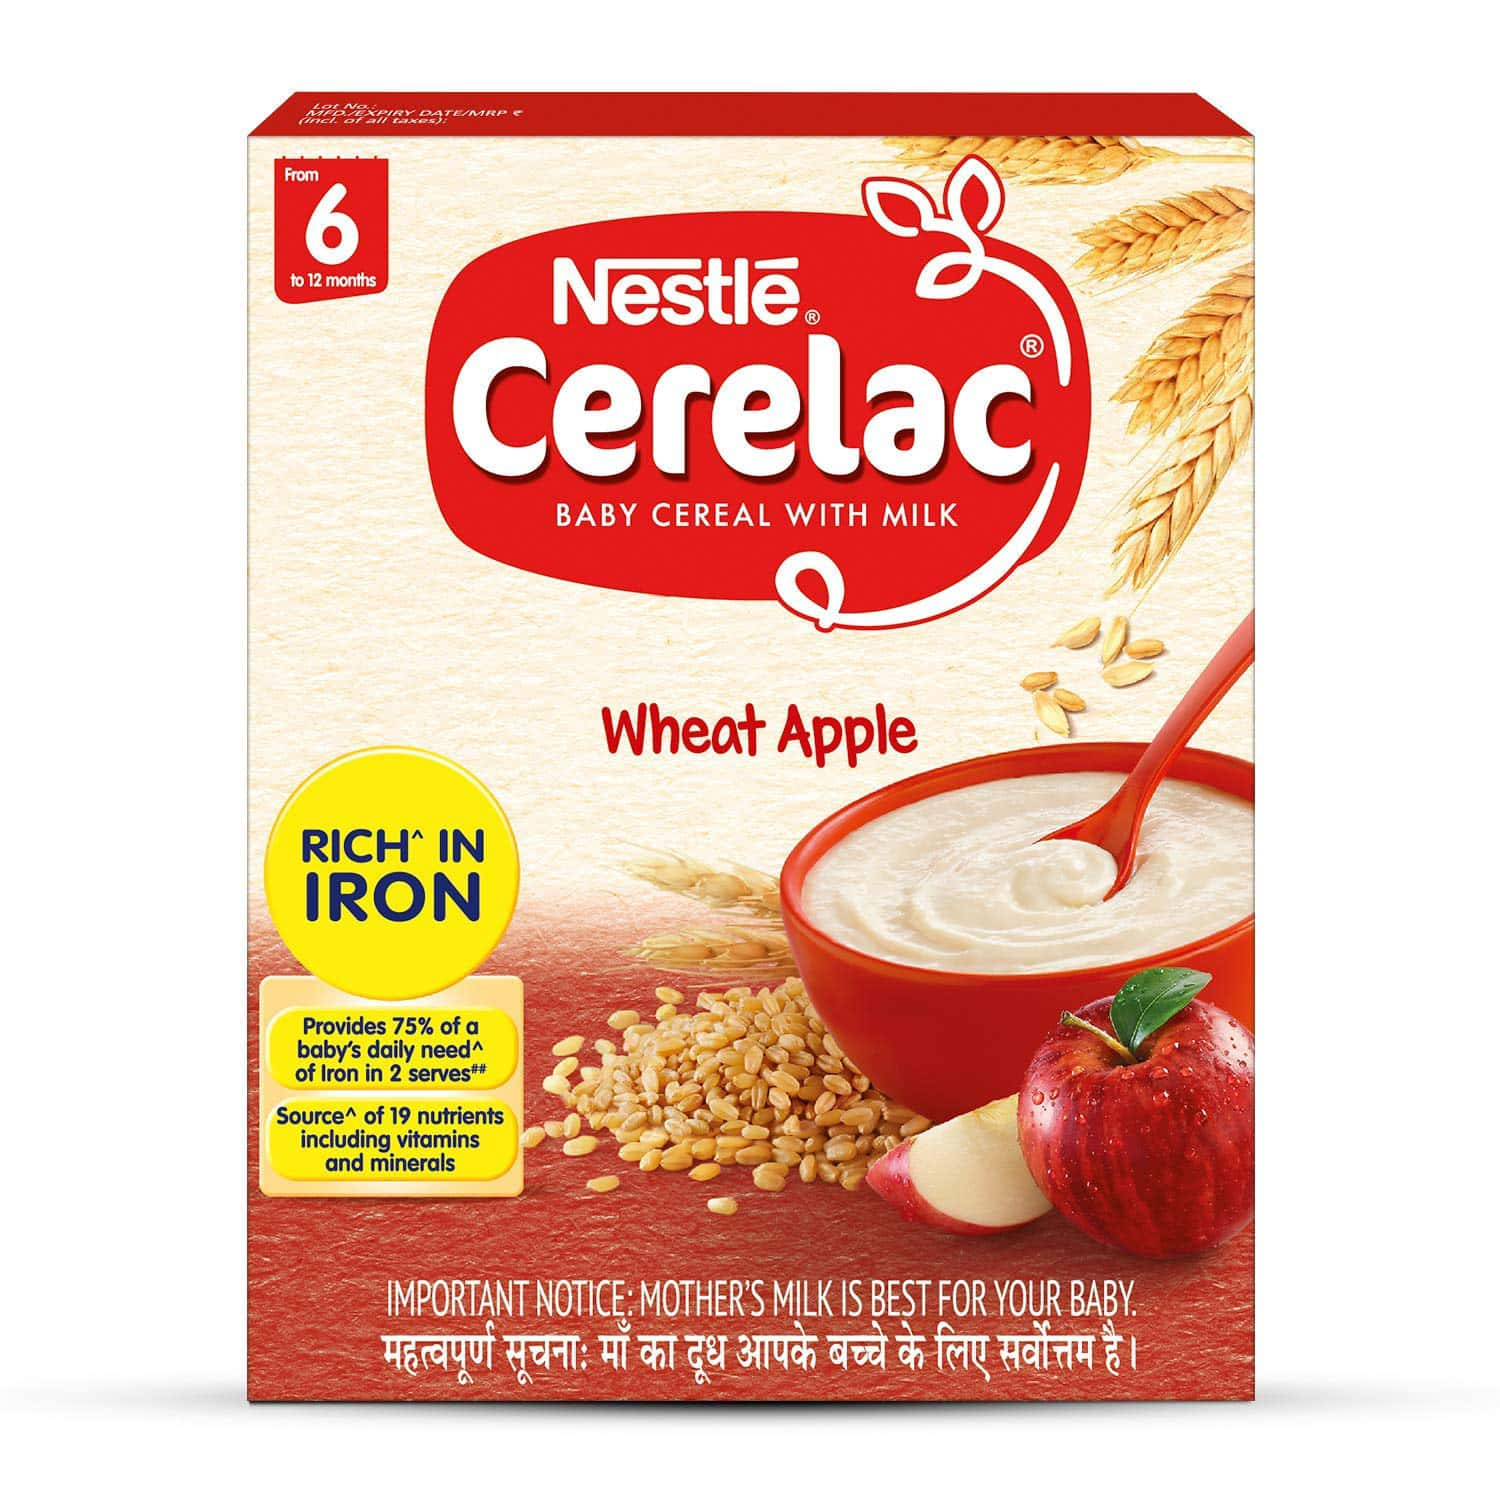 Nestle Cerelac Baby Cereal With Milk Wheat Apple Baby Food (from 6 Months) Box Of 300 G